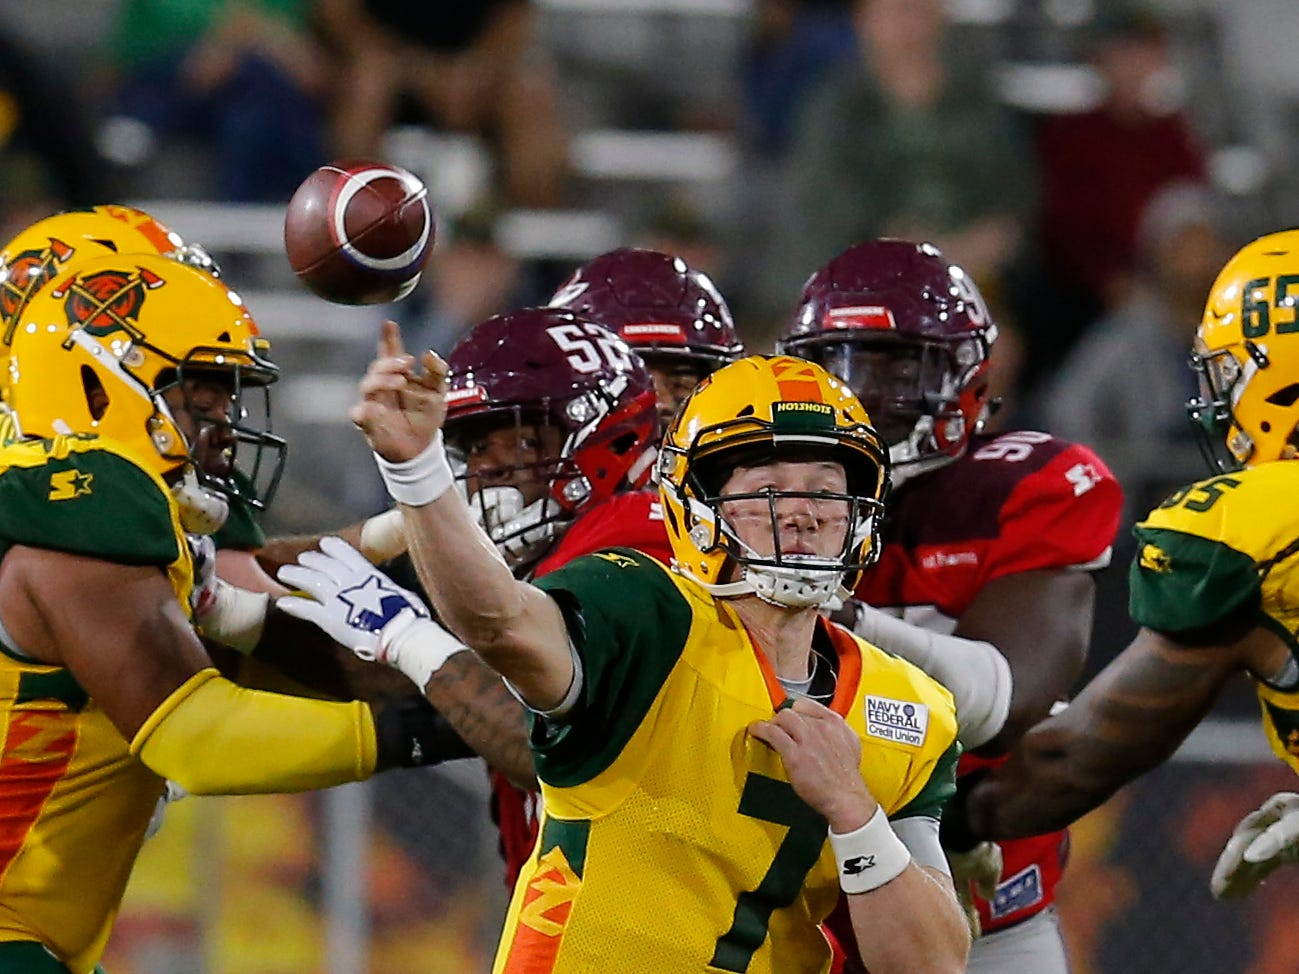 Arizona Hotshots quarterback John Wolford (7) throws down field against the San Antonio Commanders pressure in the second half during an AAF football game, Sunday, March 10, 2019, at Sun Devil Stadium in Phoenix. San Antonio defeated Arizona 29-25. (AP Photo/Rick Scuteri)